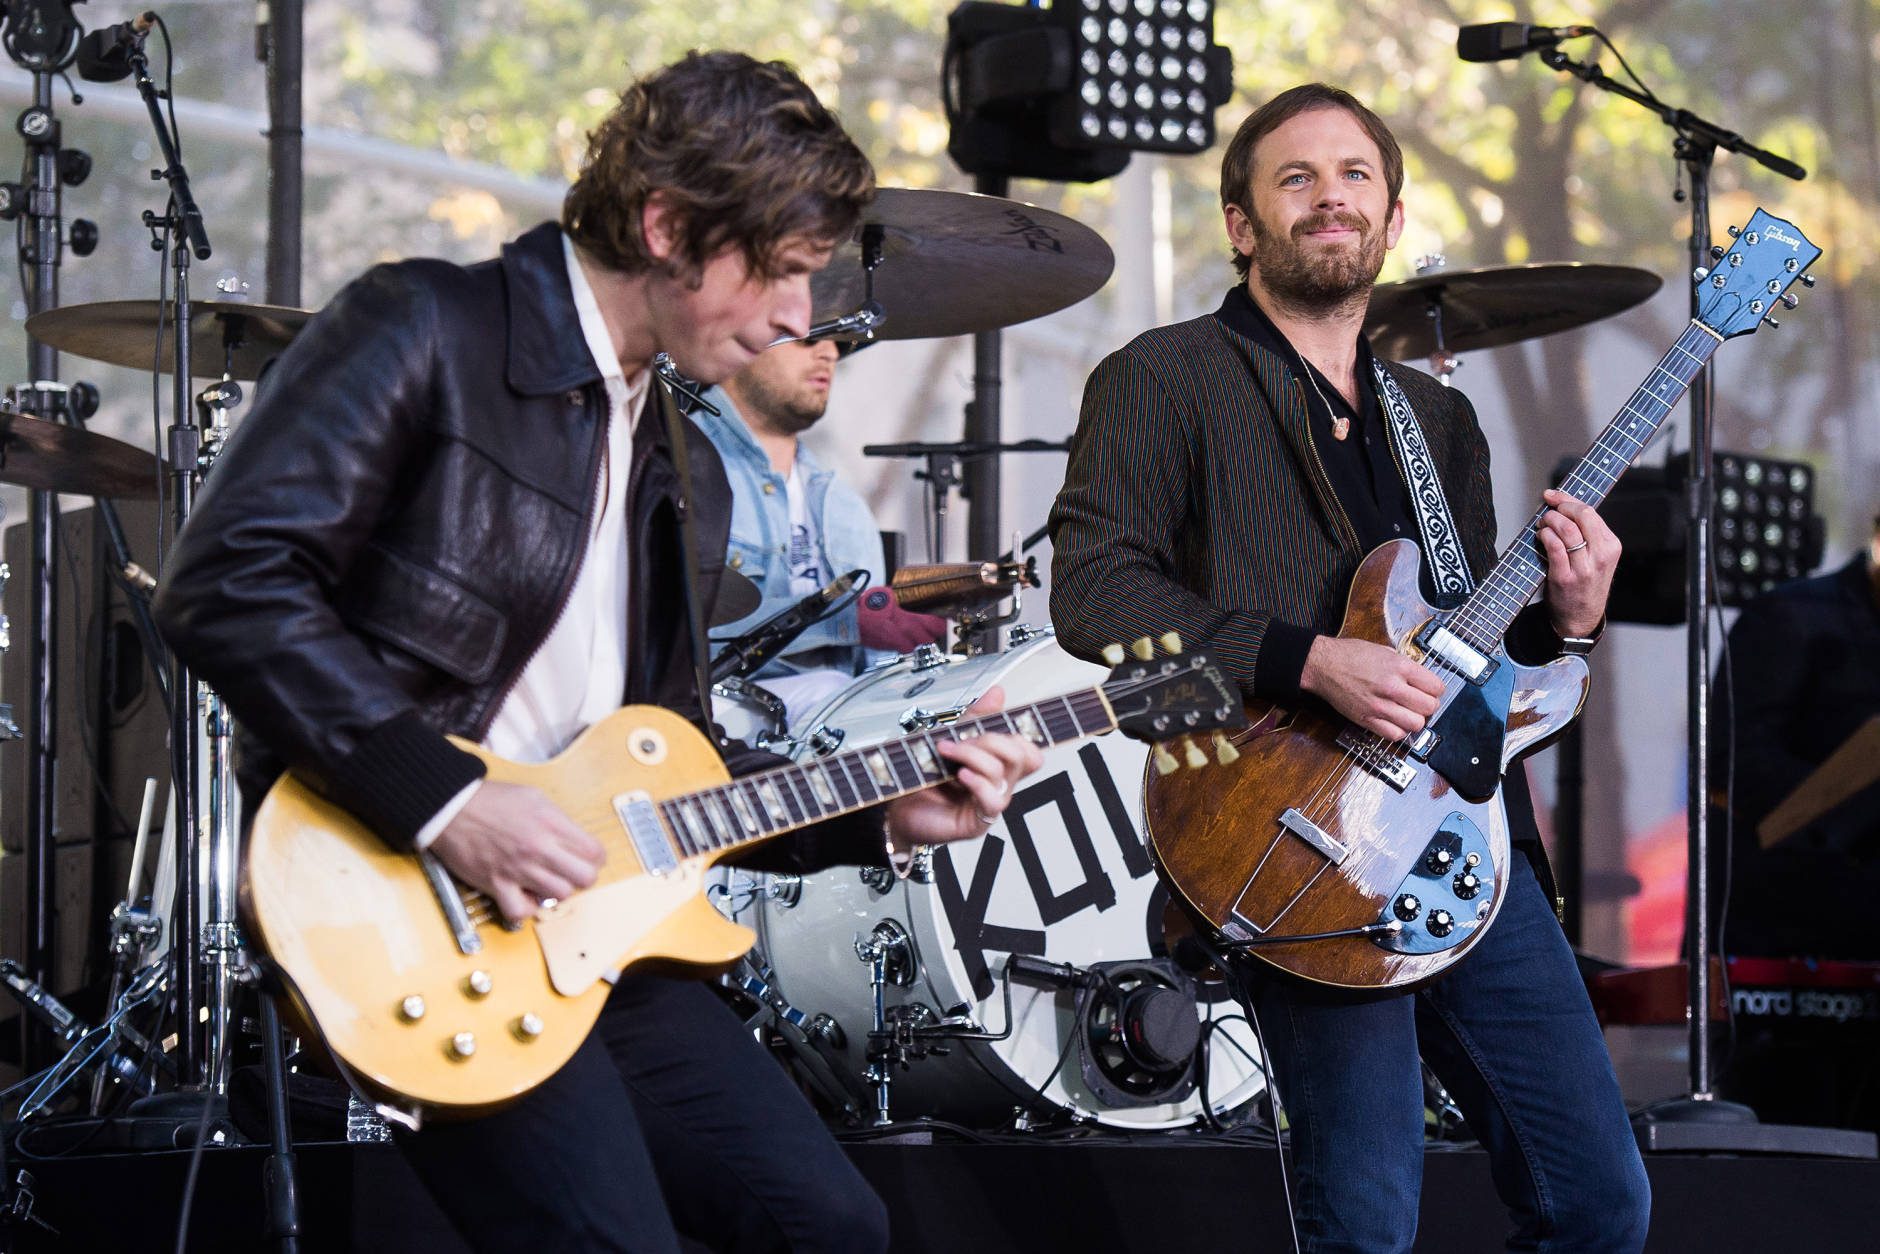 Kings of Leon will perform at MGM National Harbor Jan. 12, 2017. (Photo by Charles Sykes/Invision/AP)